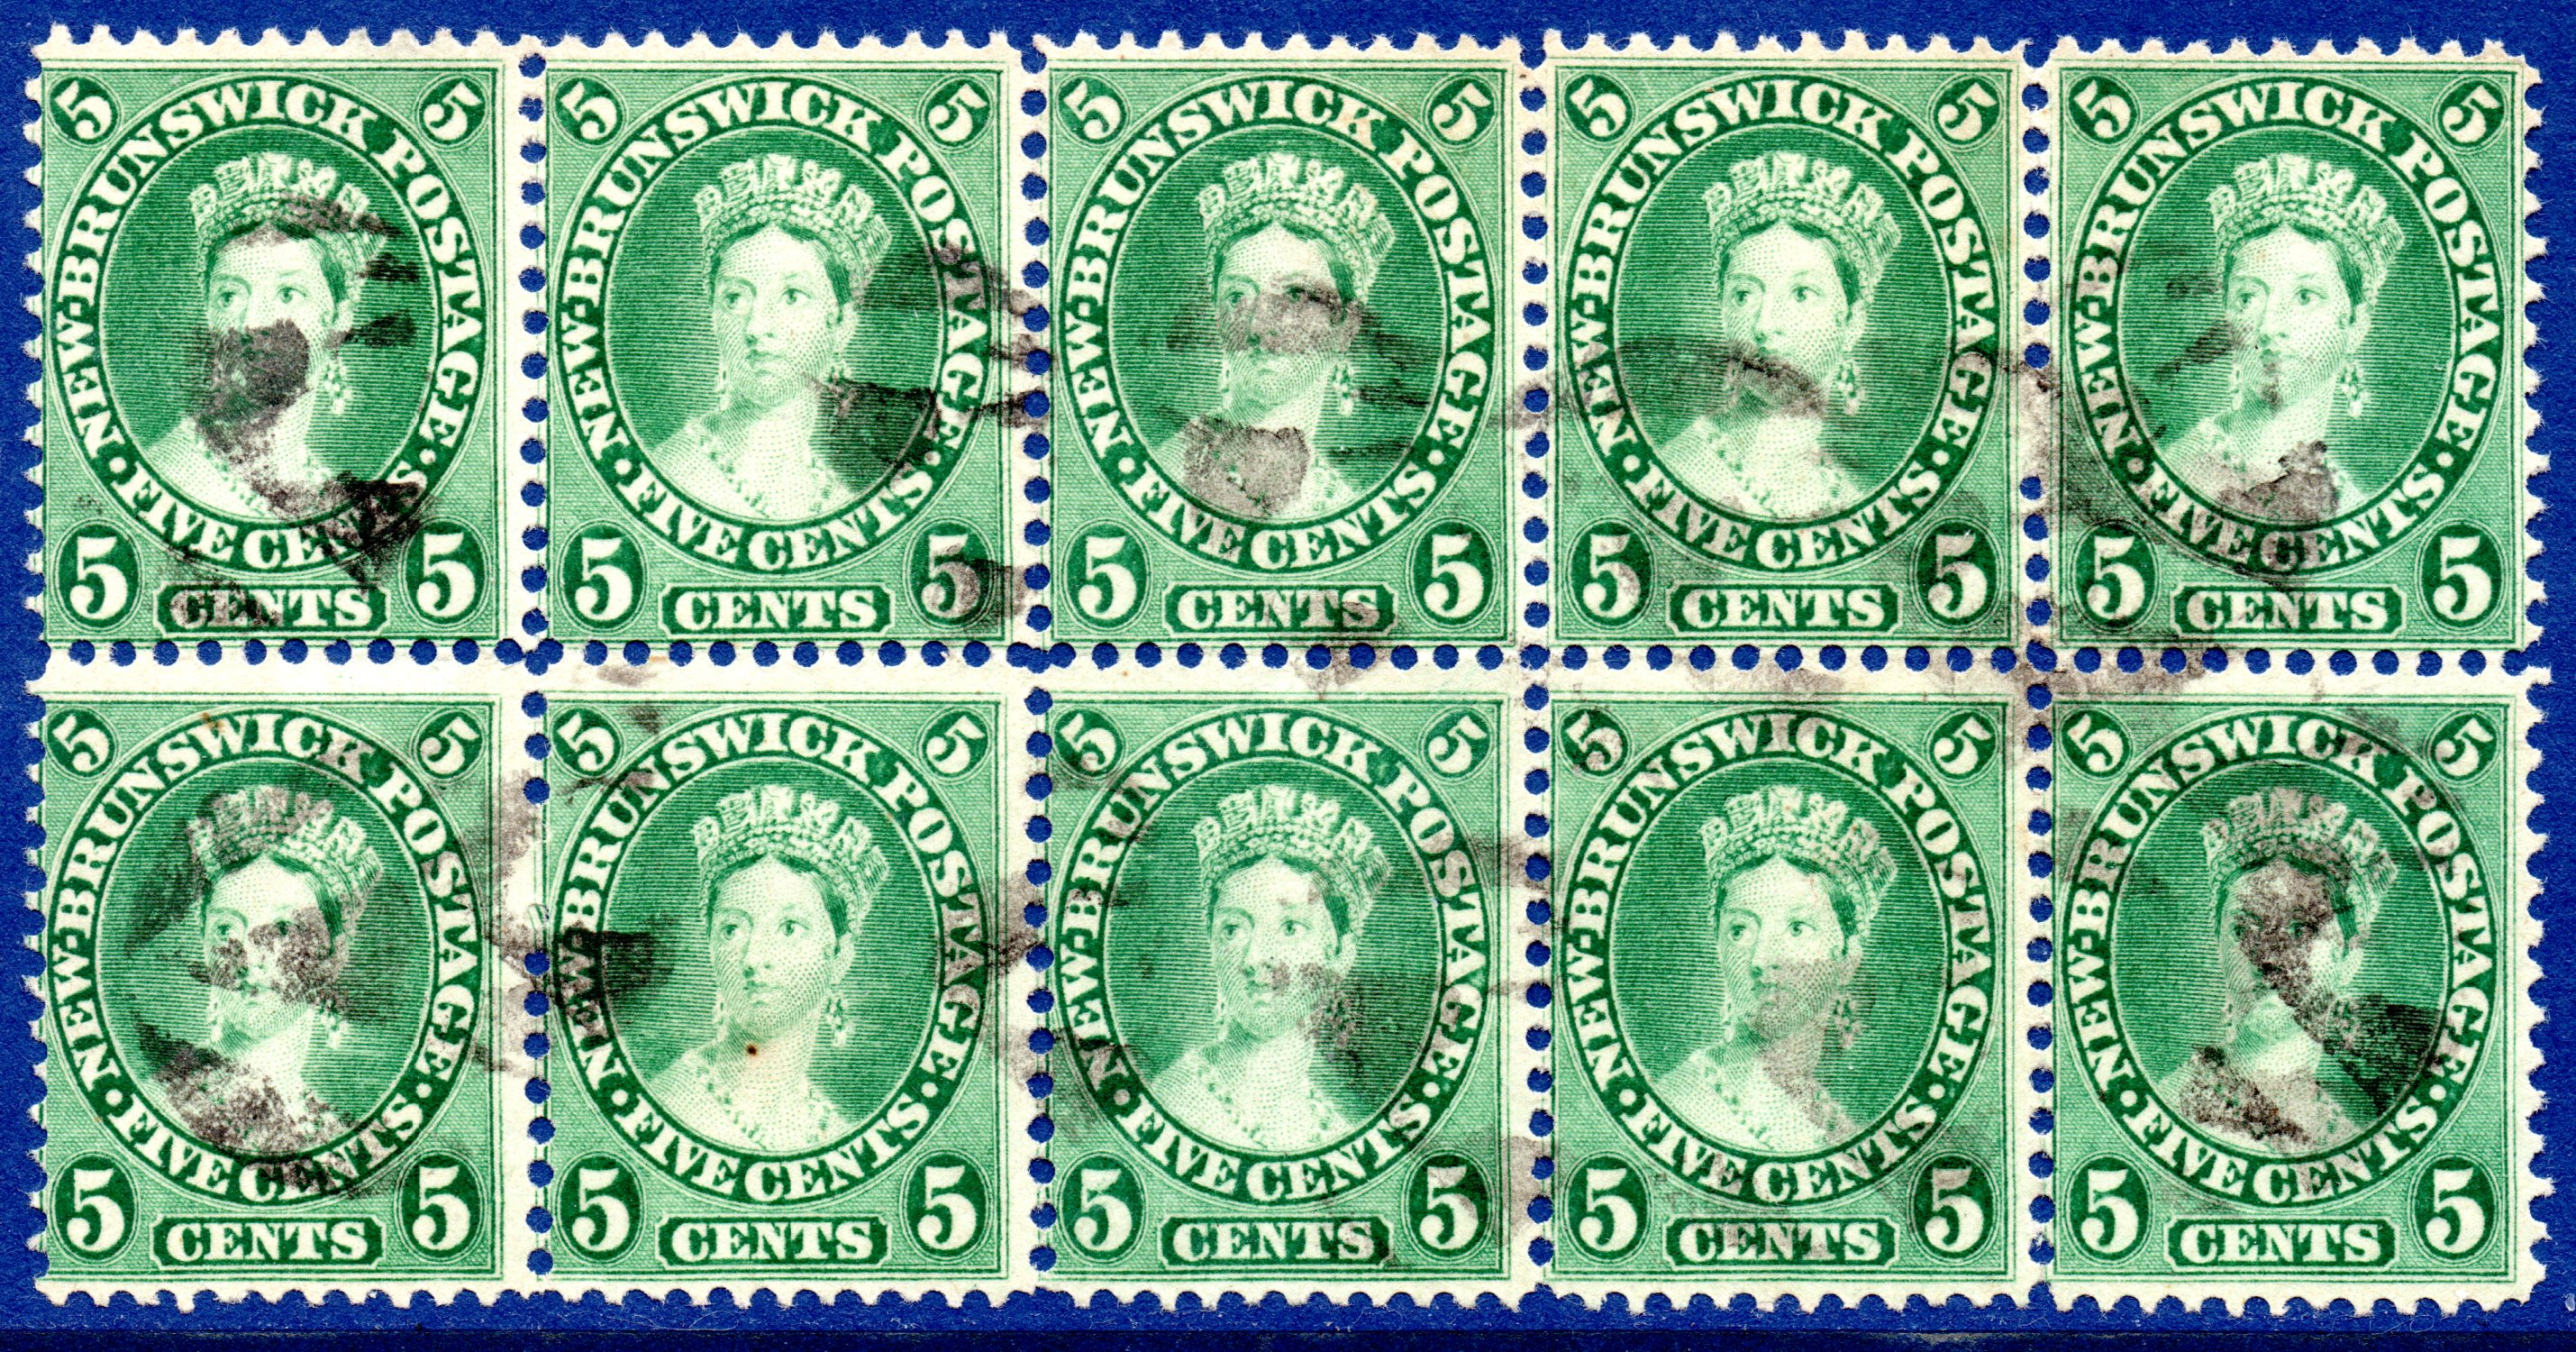 NEW BRUNSWICK 1860 5 Cents Deep Green SCARCE USED BLOCK OF TEN - PLUS BROKEN PERF PINS VARIETY SG15